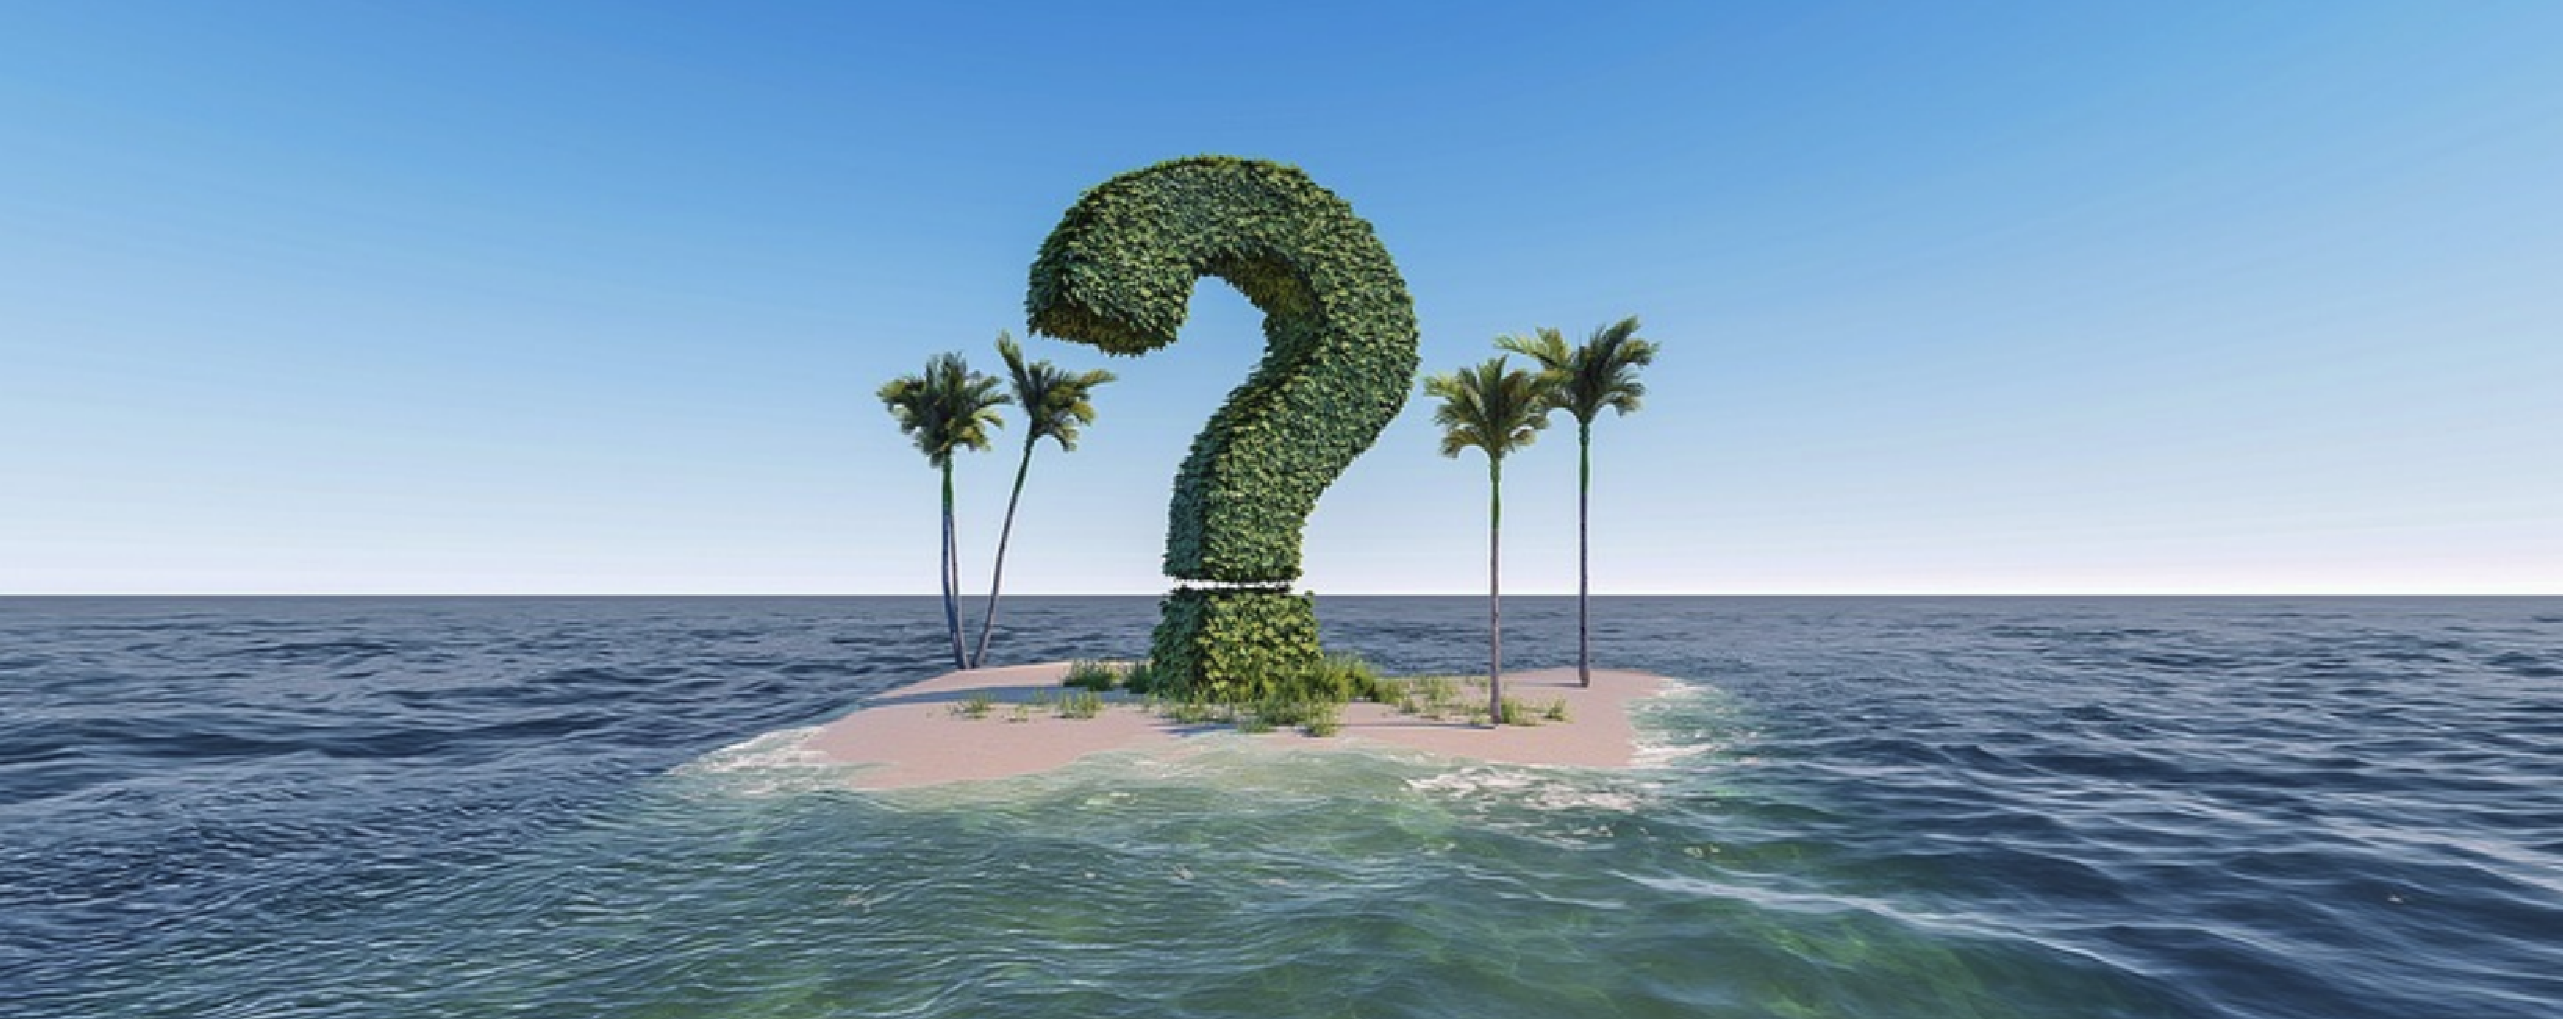 giant question mark hedge on deserted island